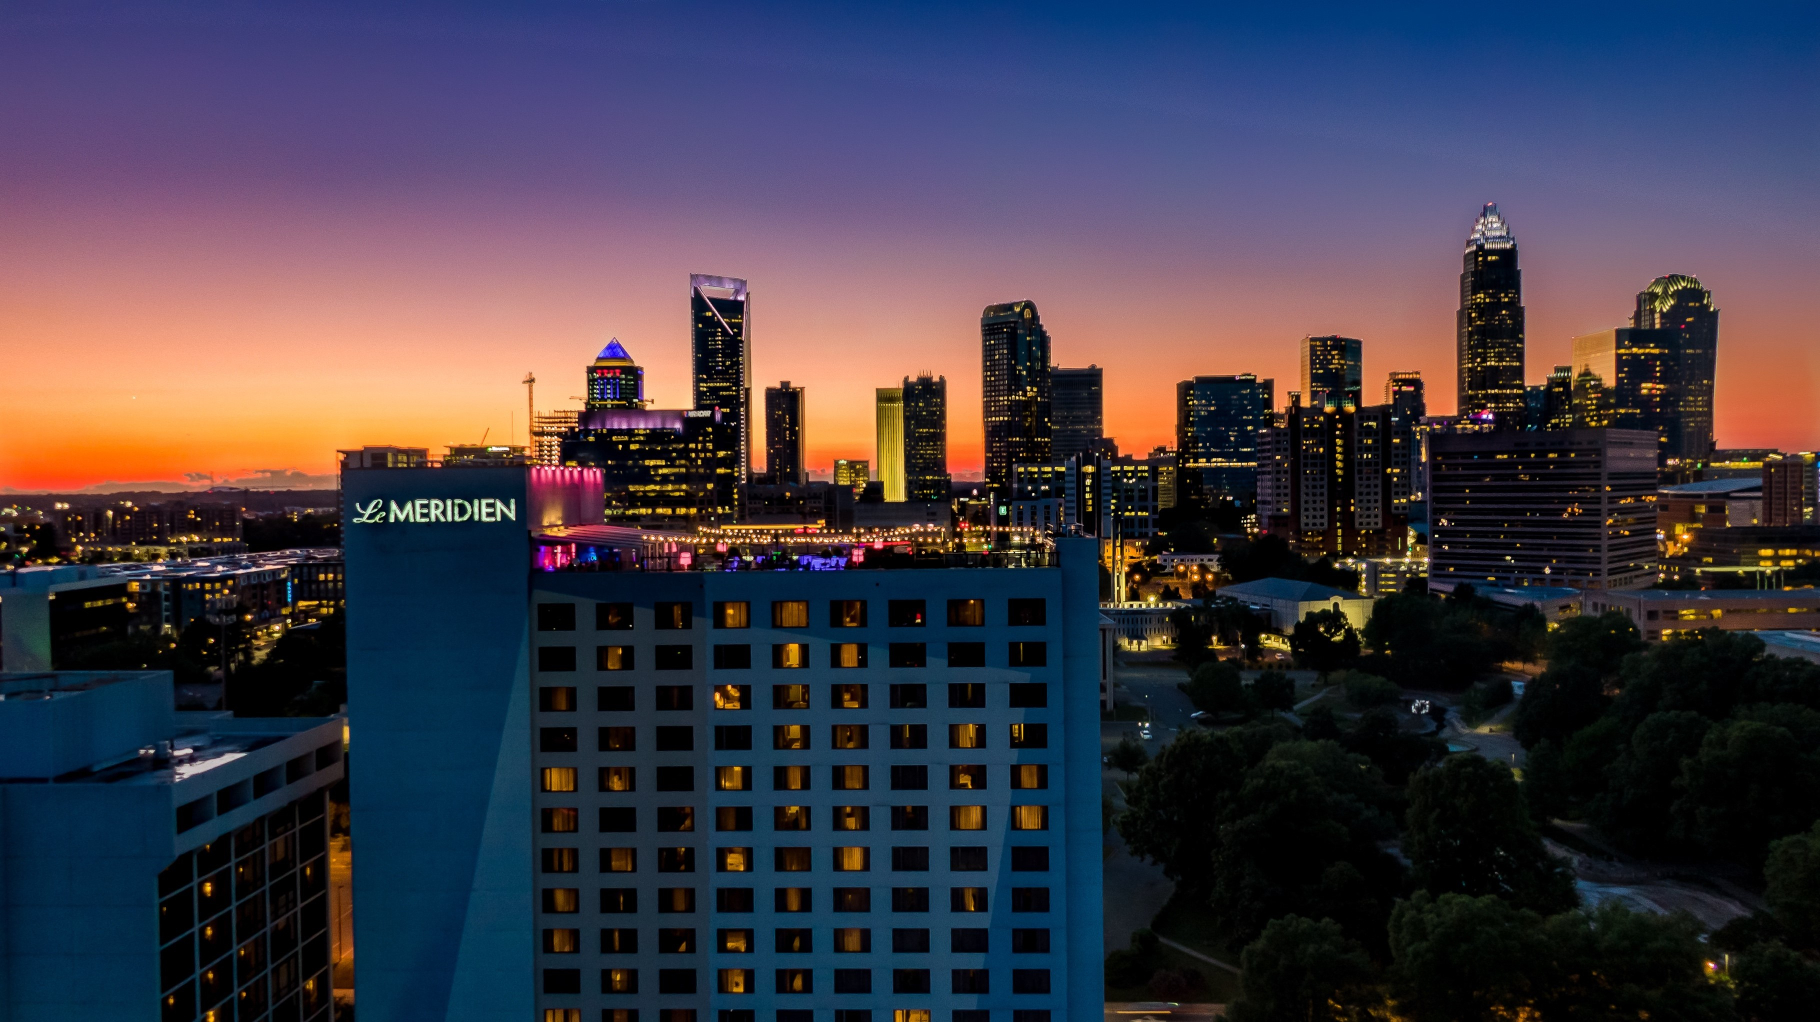 Sheraton Le Meridien Sunset photo